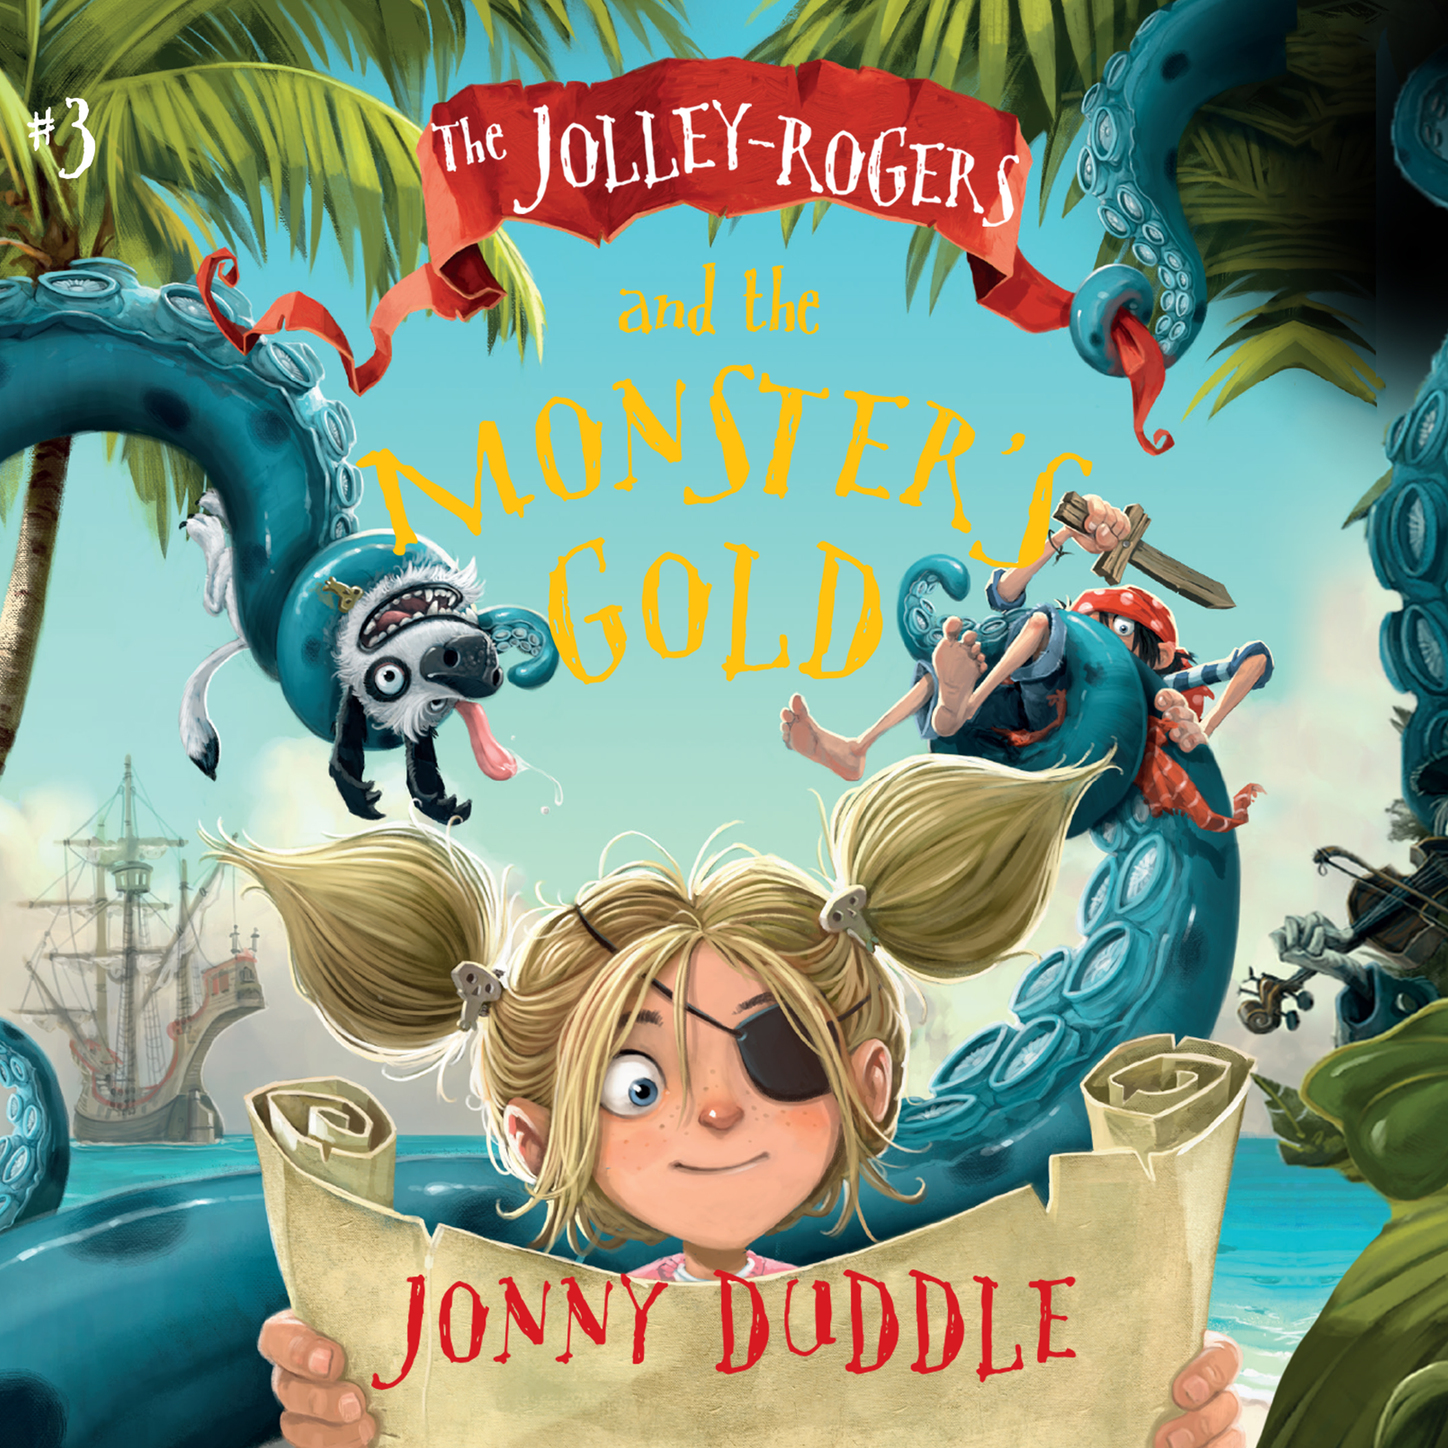 Jonny Duddle The Jolley-Rogers and the Monster's Gold - The Jolley-Rogers Series, Book 3 (Unabridged) jennifer brody the united continuums the continuum trilogy book 3 unabridged